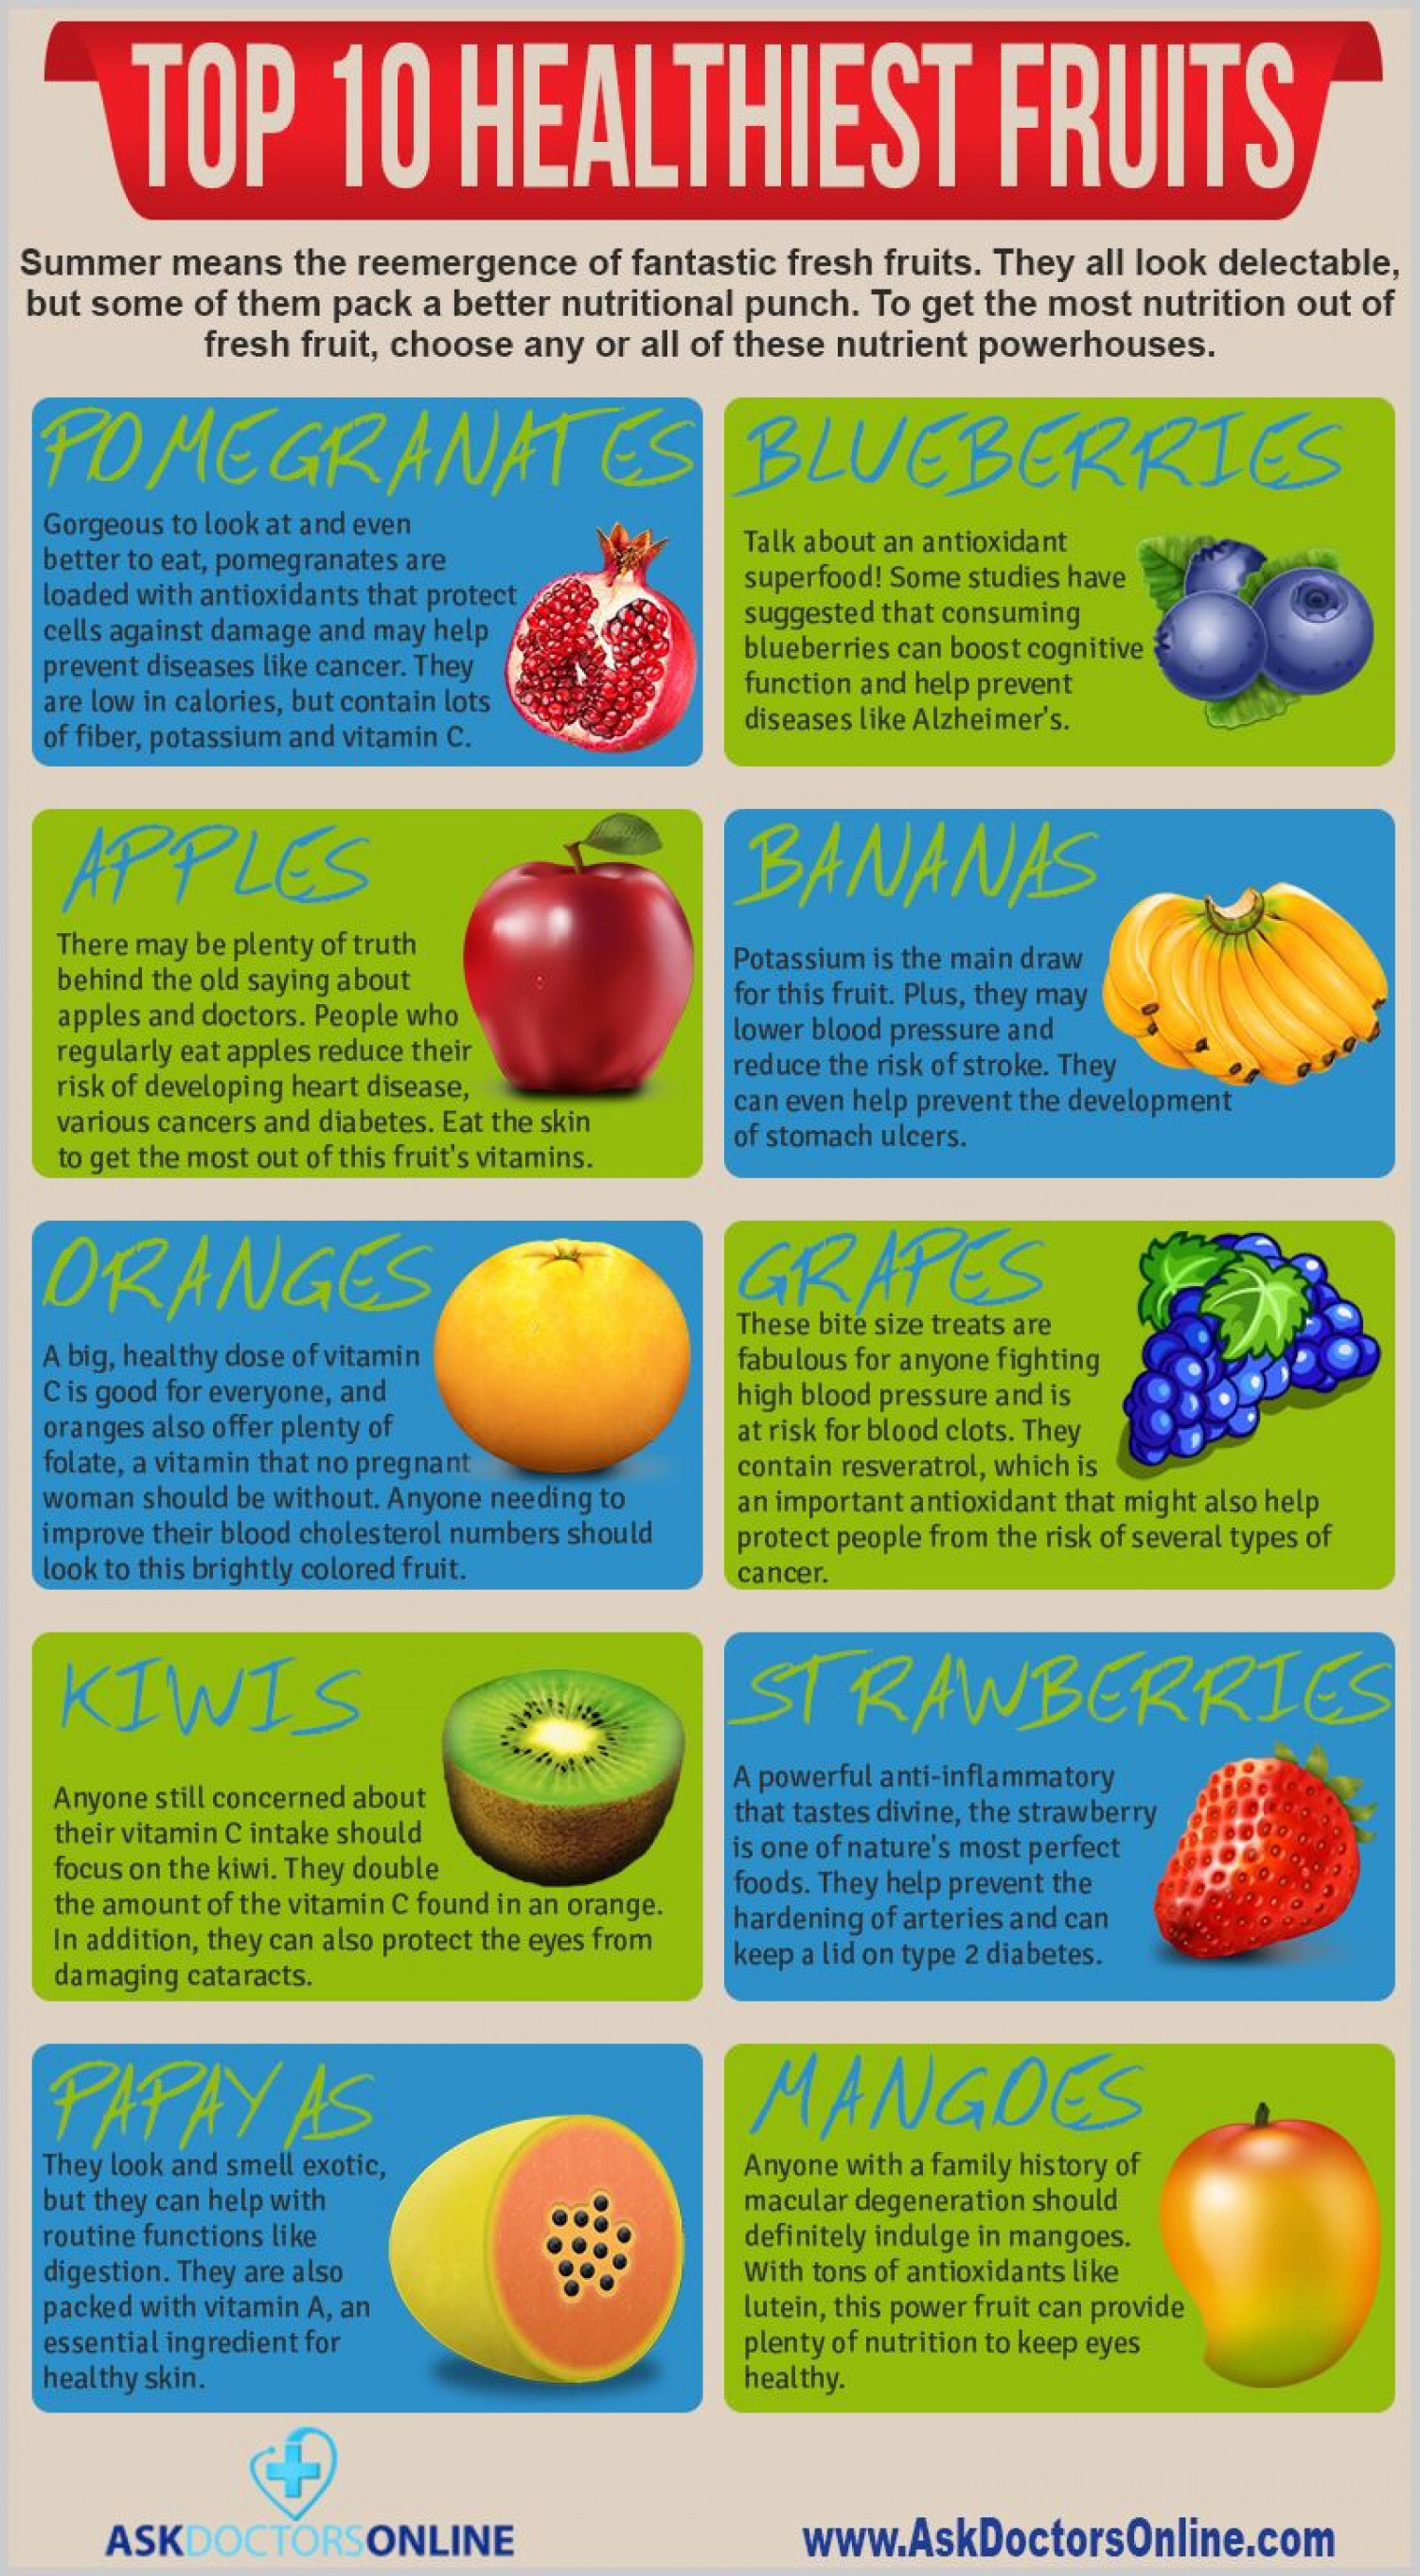 Top 10 Healthiest Fruits Infographic